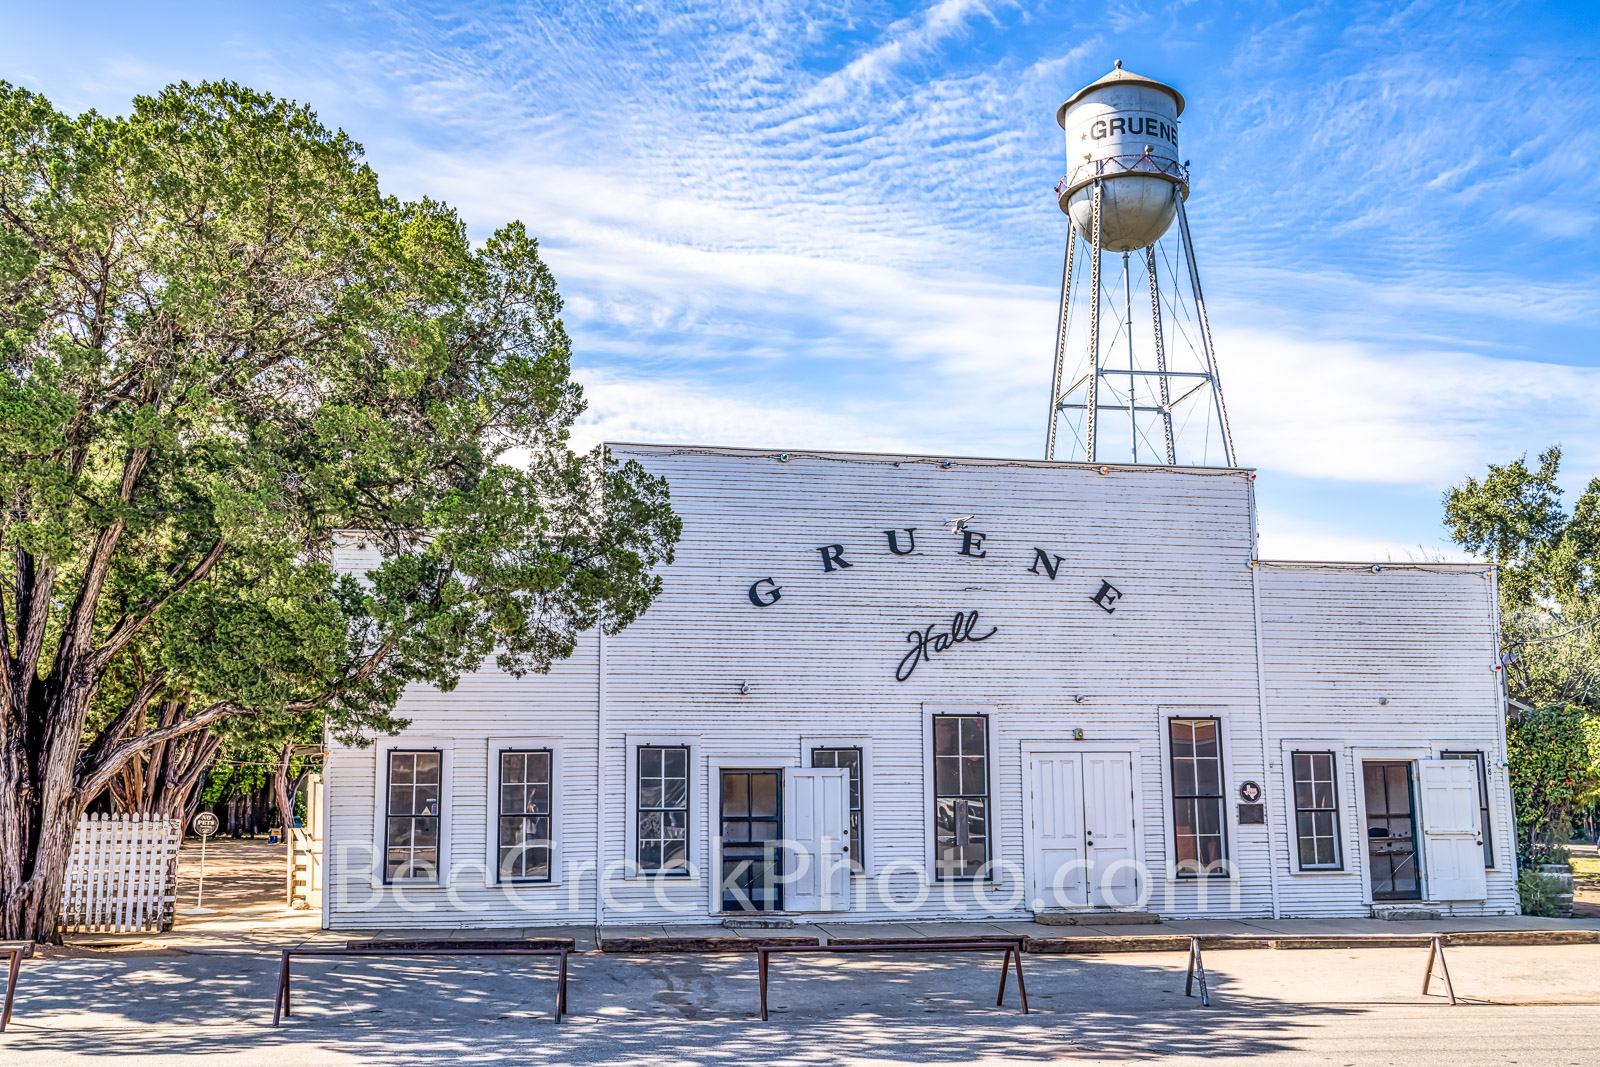 Gruene Hall - Gruene is an area located just within New Braunfels city limits which was created in the 1940a by German immigrant...